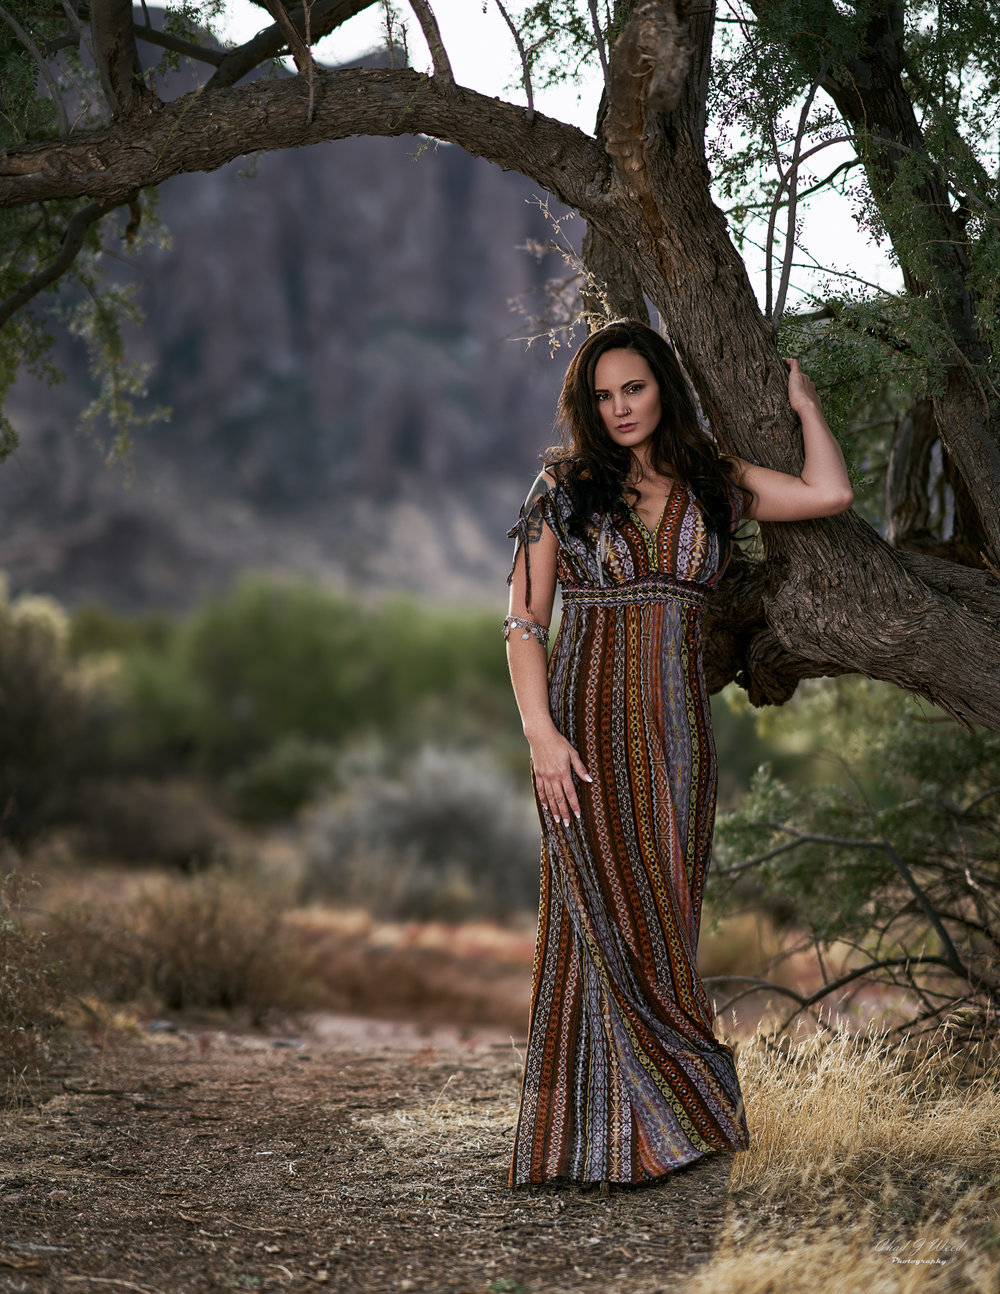 Erica Glamour Superstition Mountains by Mesa Arizona Portrait Photographer Chad Weed